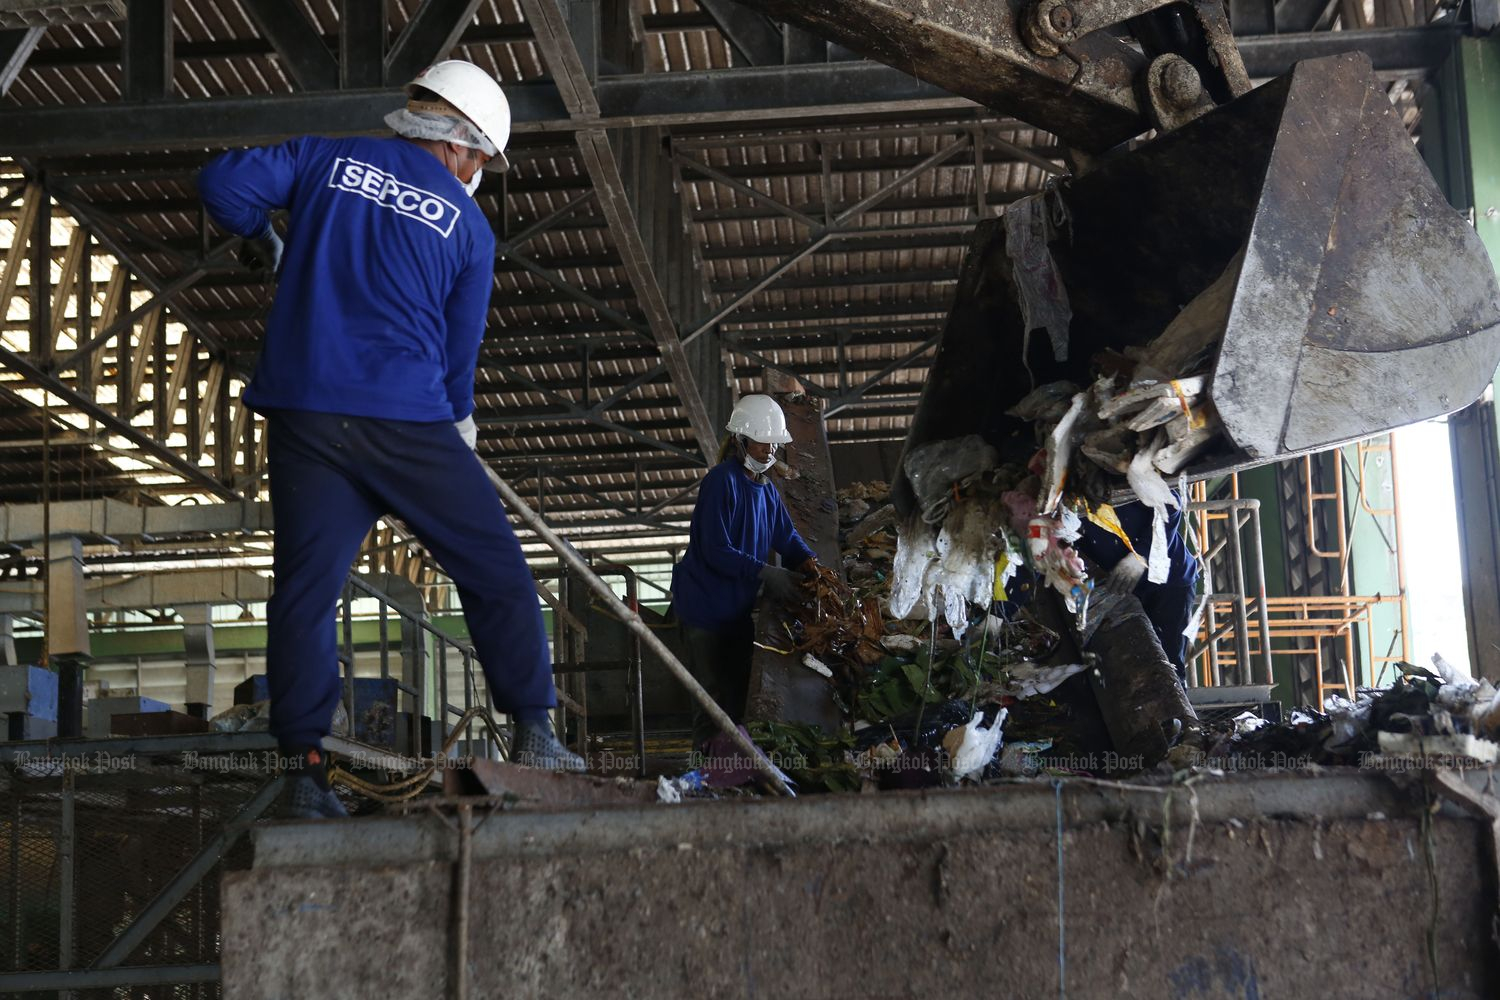 Workers from Global Power Synergy Plc sort garbage at a waste management centre in Muang district, Rayong province, in July 2018. (Bangkok Post file photo)